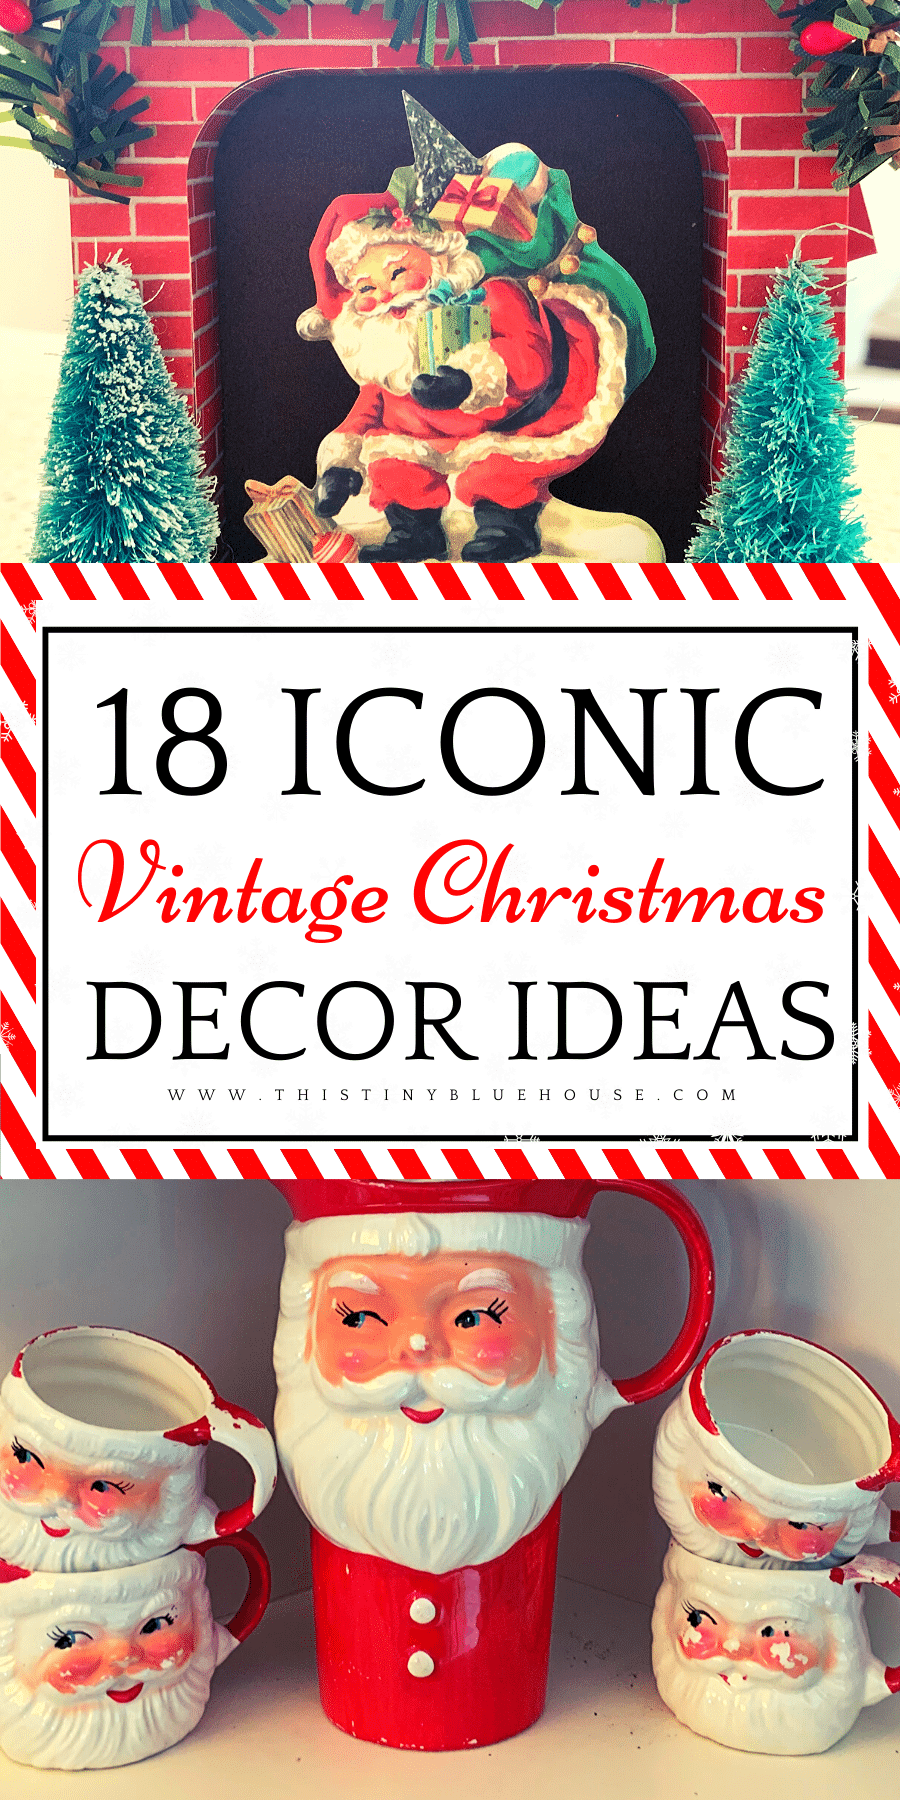 Add a sense of nostalgia to your holiday decor with these vintage Christmas decor ideas. From adorable Santa mugs to retro bubble lights, these retro Holiday decor ideas are a fun trip down memory lane of Christmases past. #vintagechristmas #vintagechristmasdecoartions #vintagechristmasdecorating #retrochristmas #retrochristmasdecorations #retrochristmasvintage